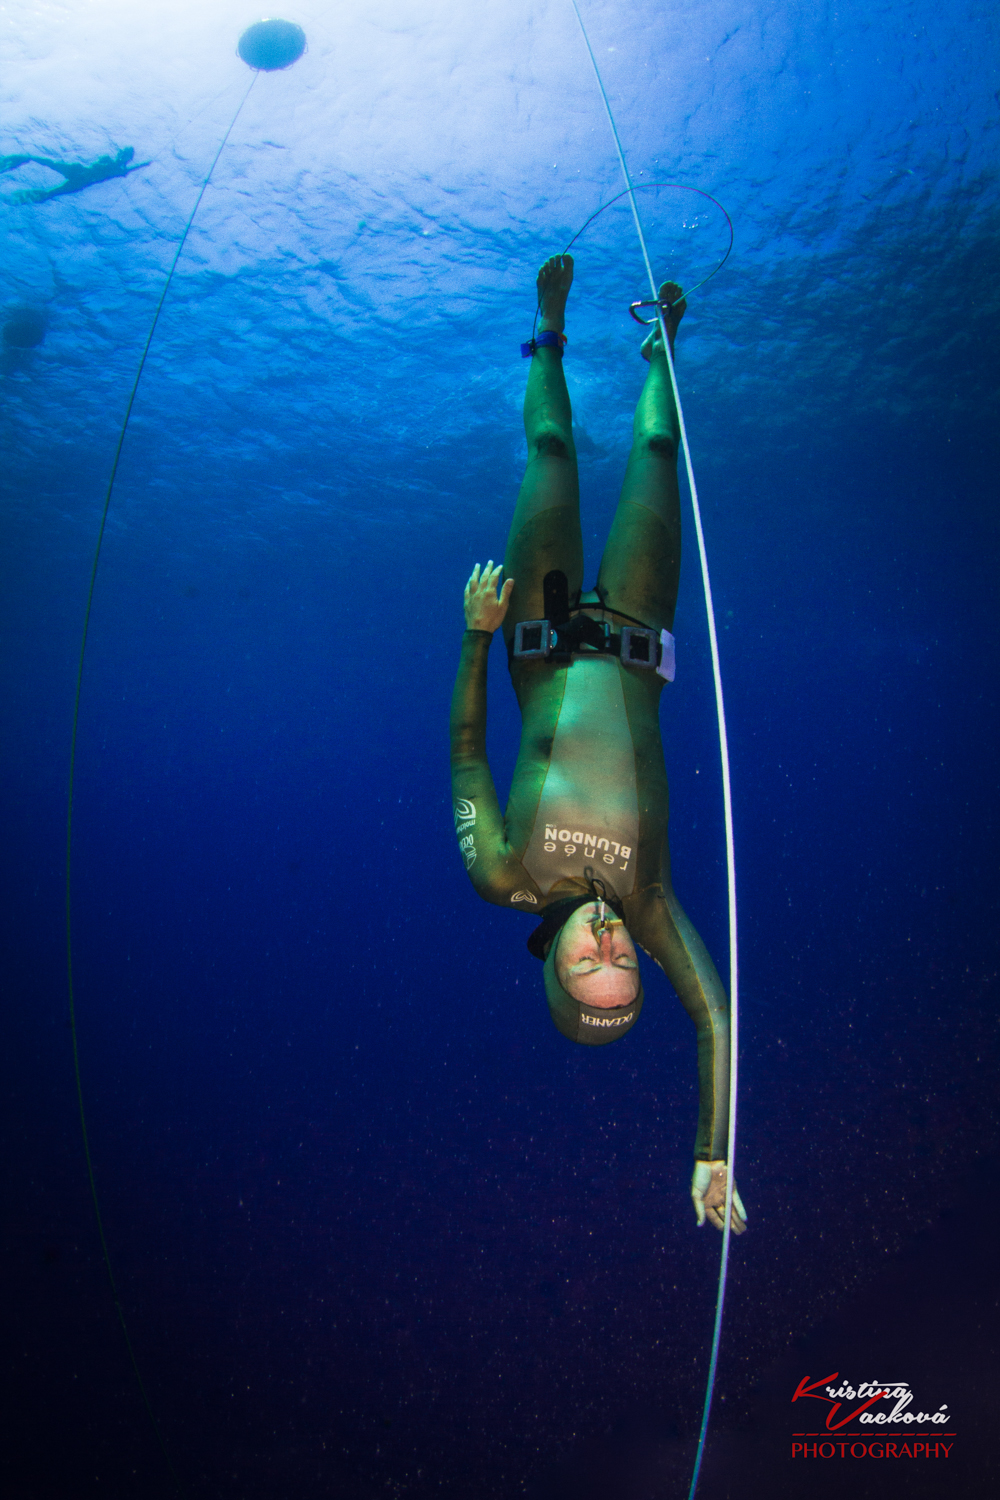 Renee Blundon - Freediver